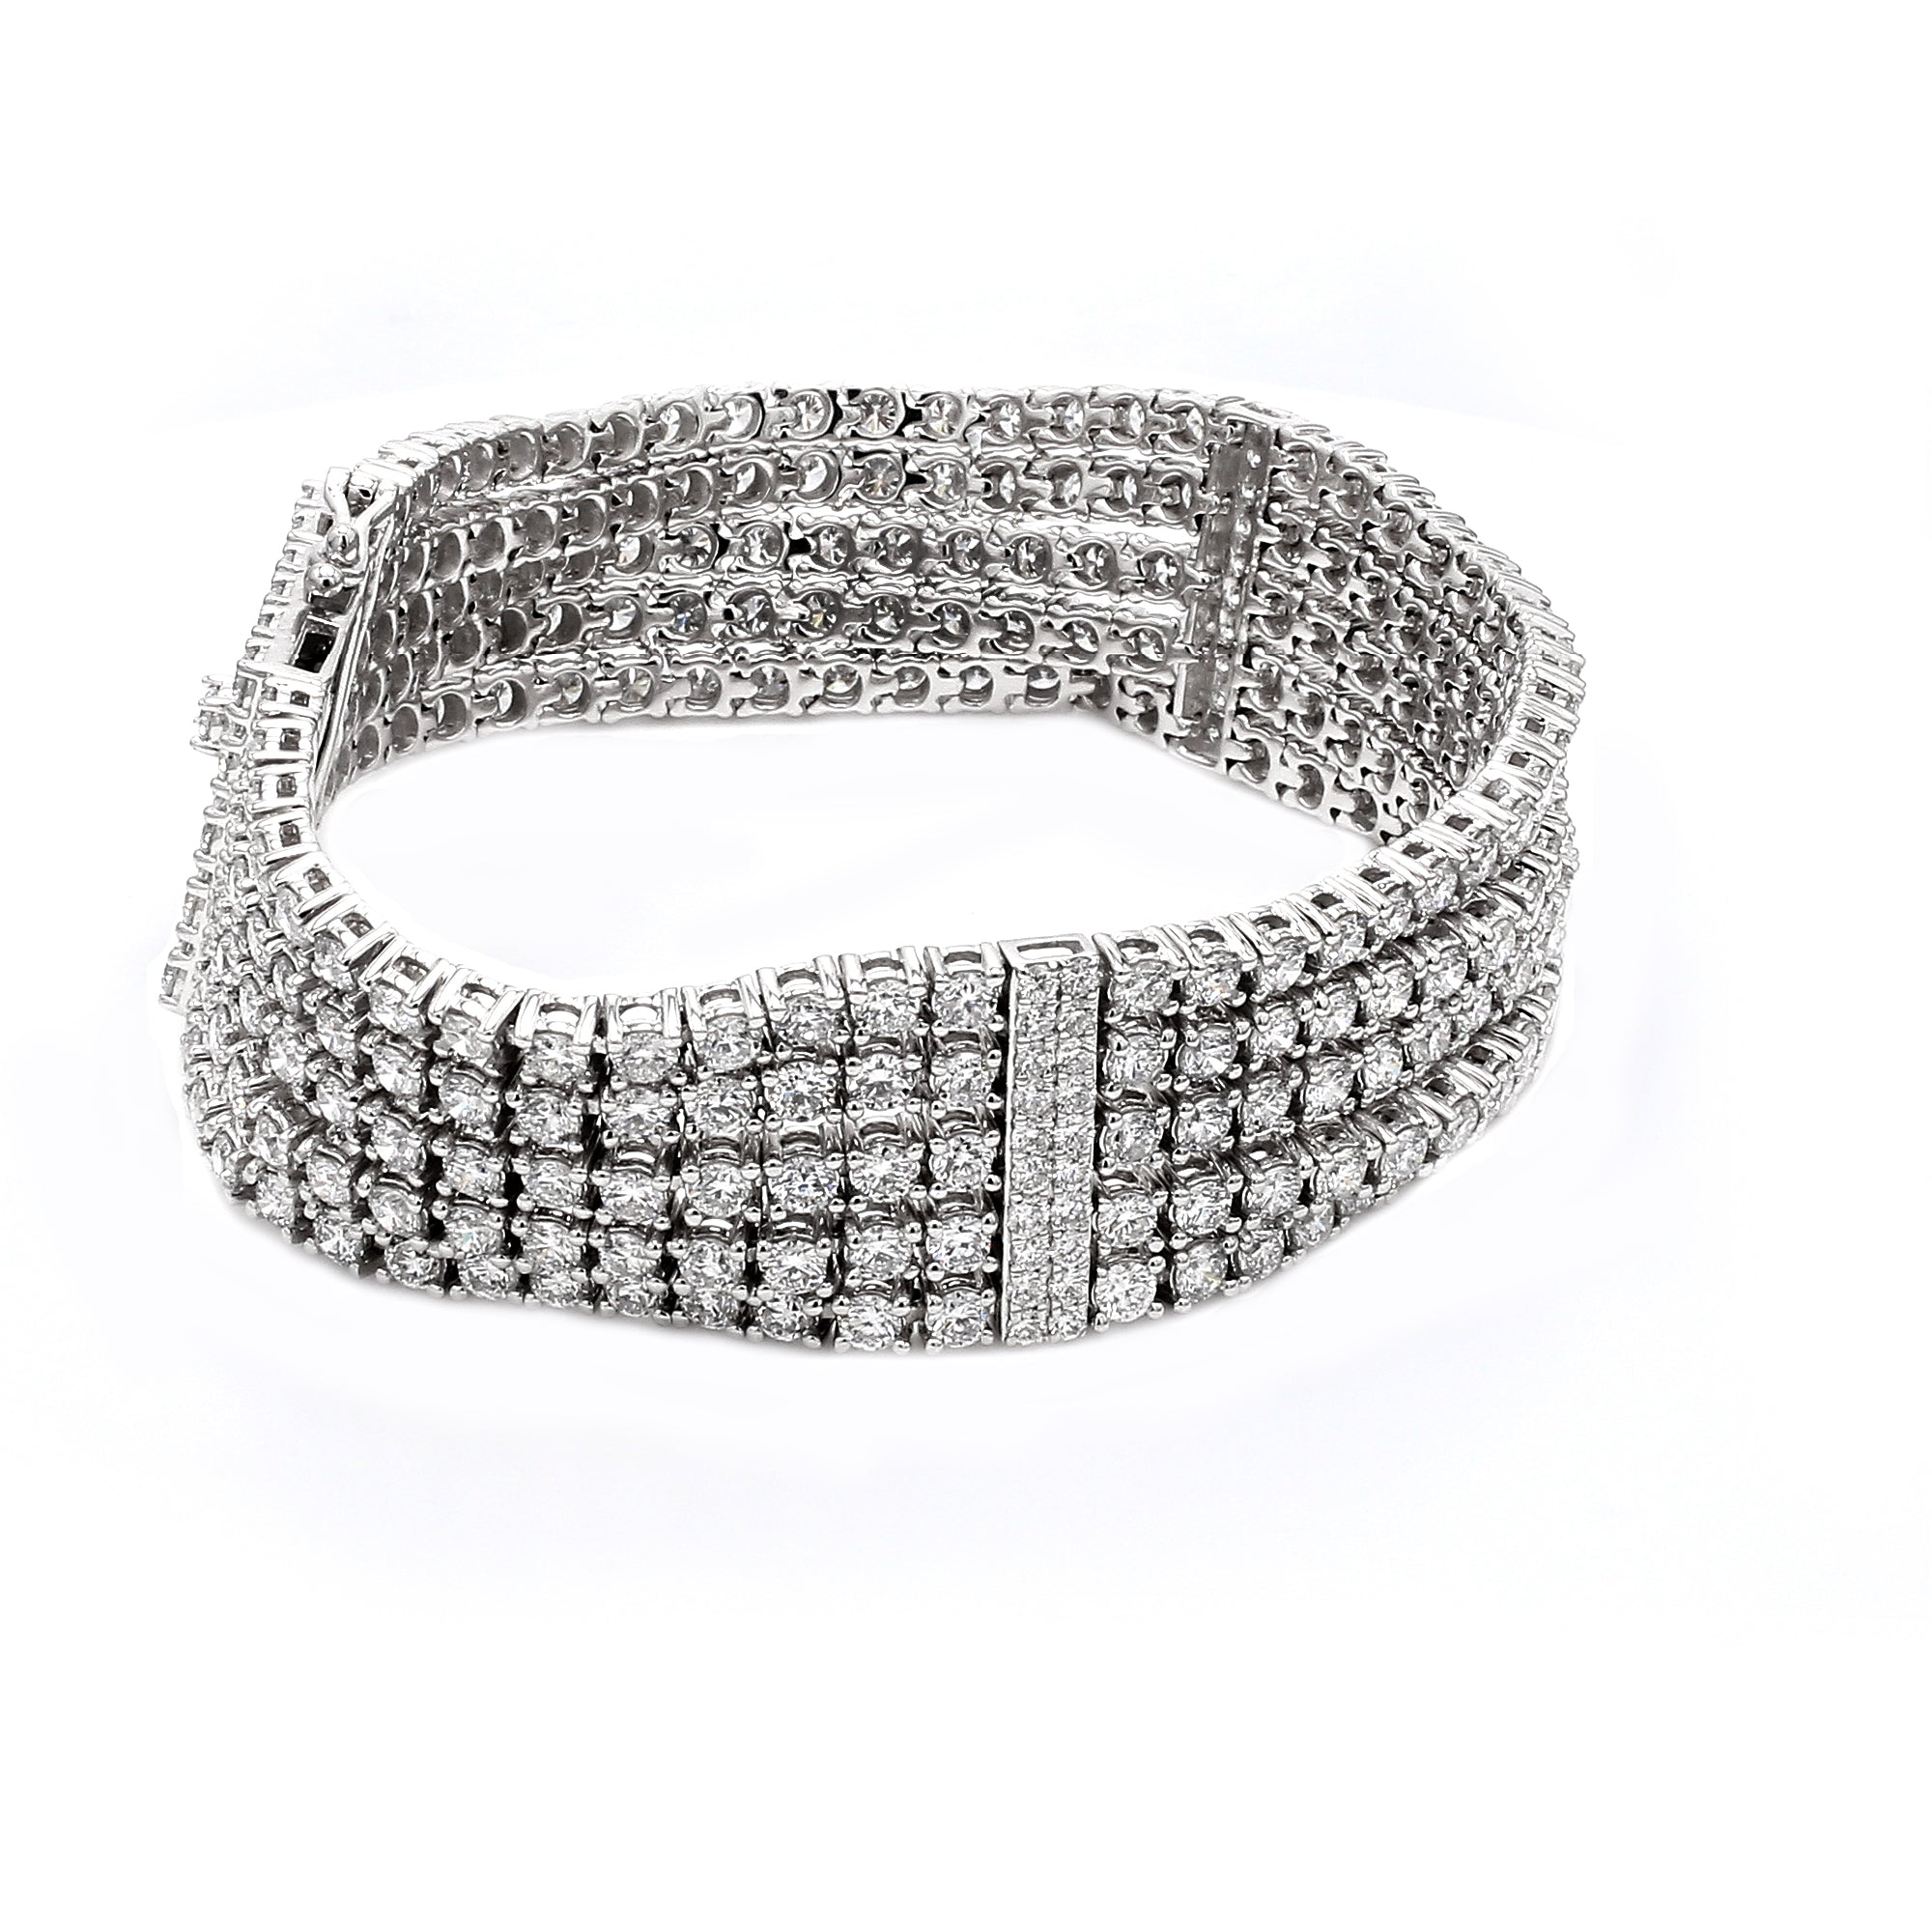 14K White Gold 20.00CT TW Lab Grown Diamond Multi-Row Bracelet